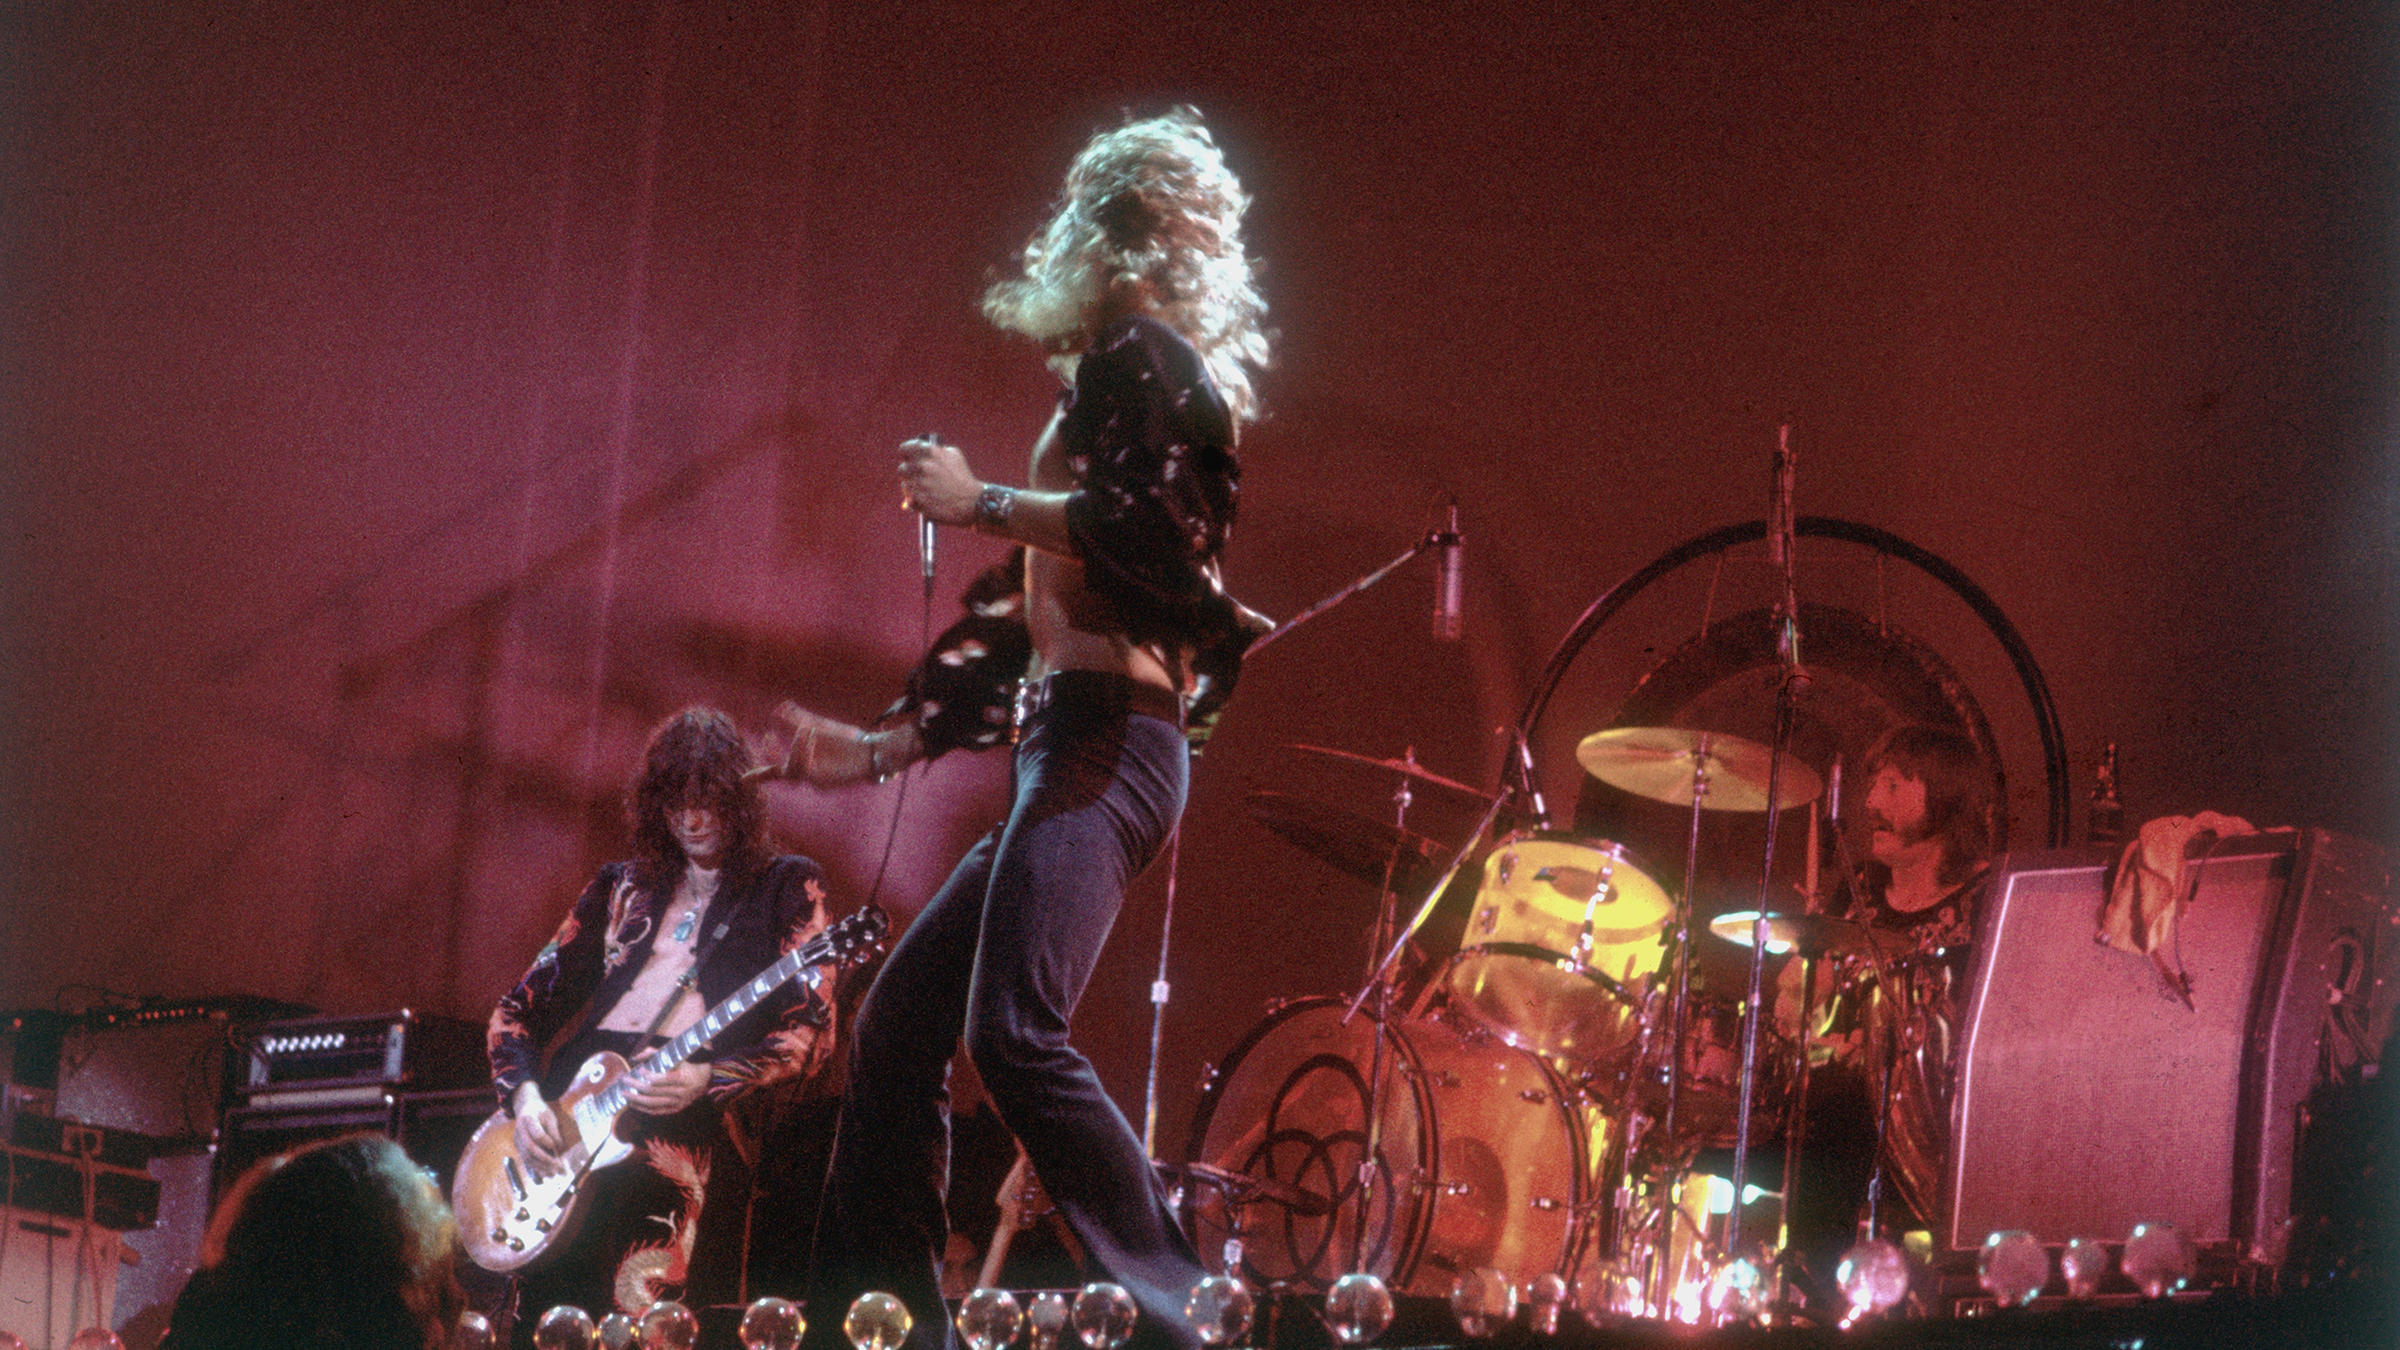 Led Zeppelin emerges victor in Stairway to Heaven plagiarism case